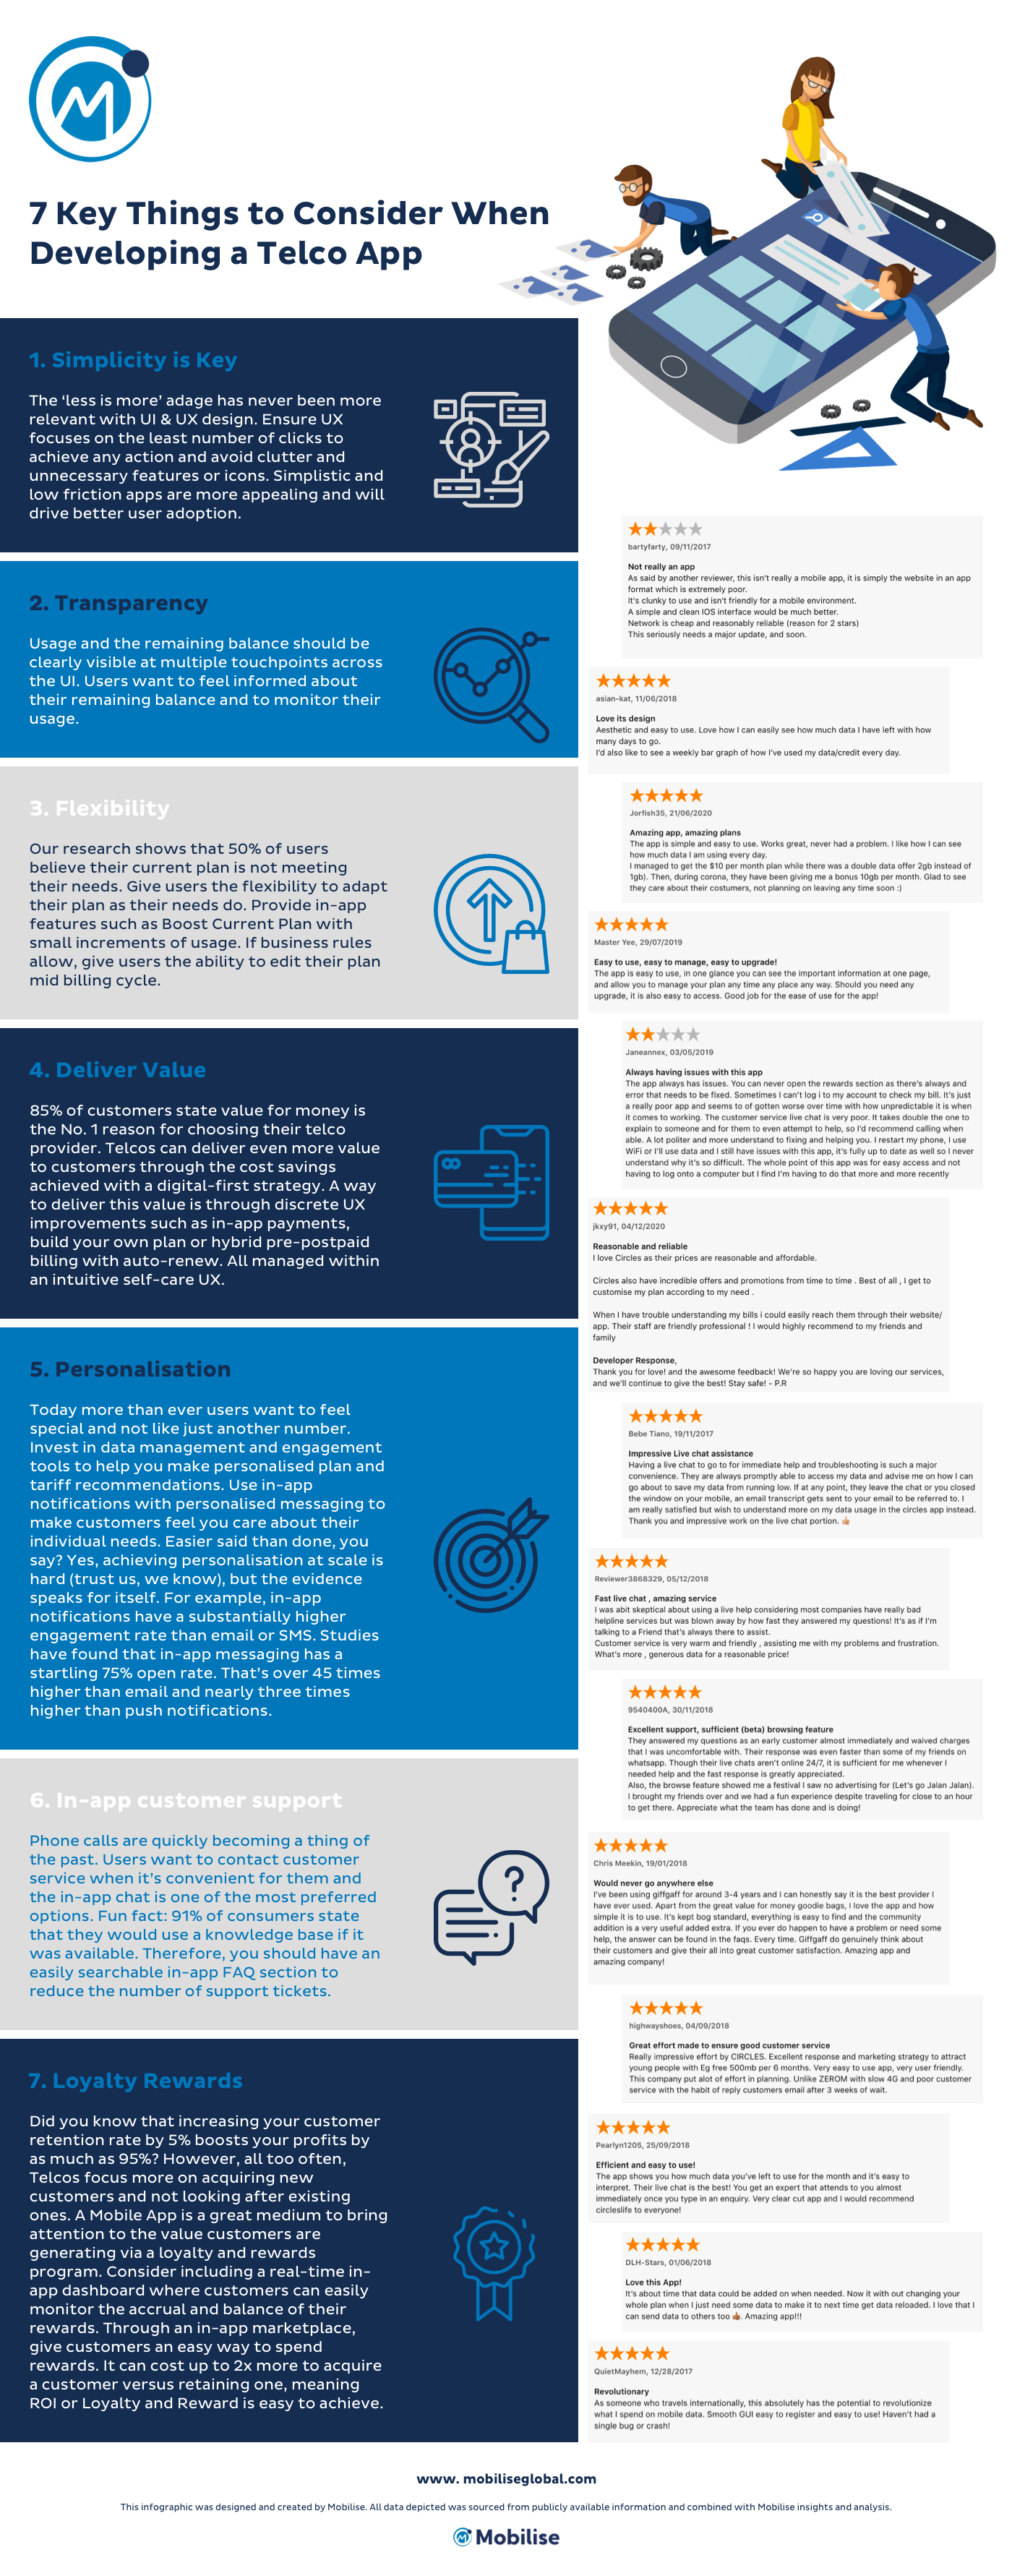 Mobilise Infographic about 7 Key aspects of developing a telco app, app store reviews